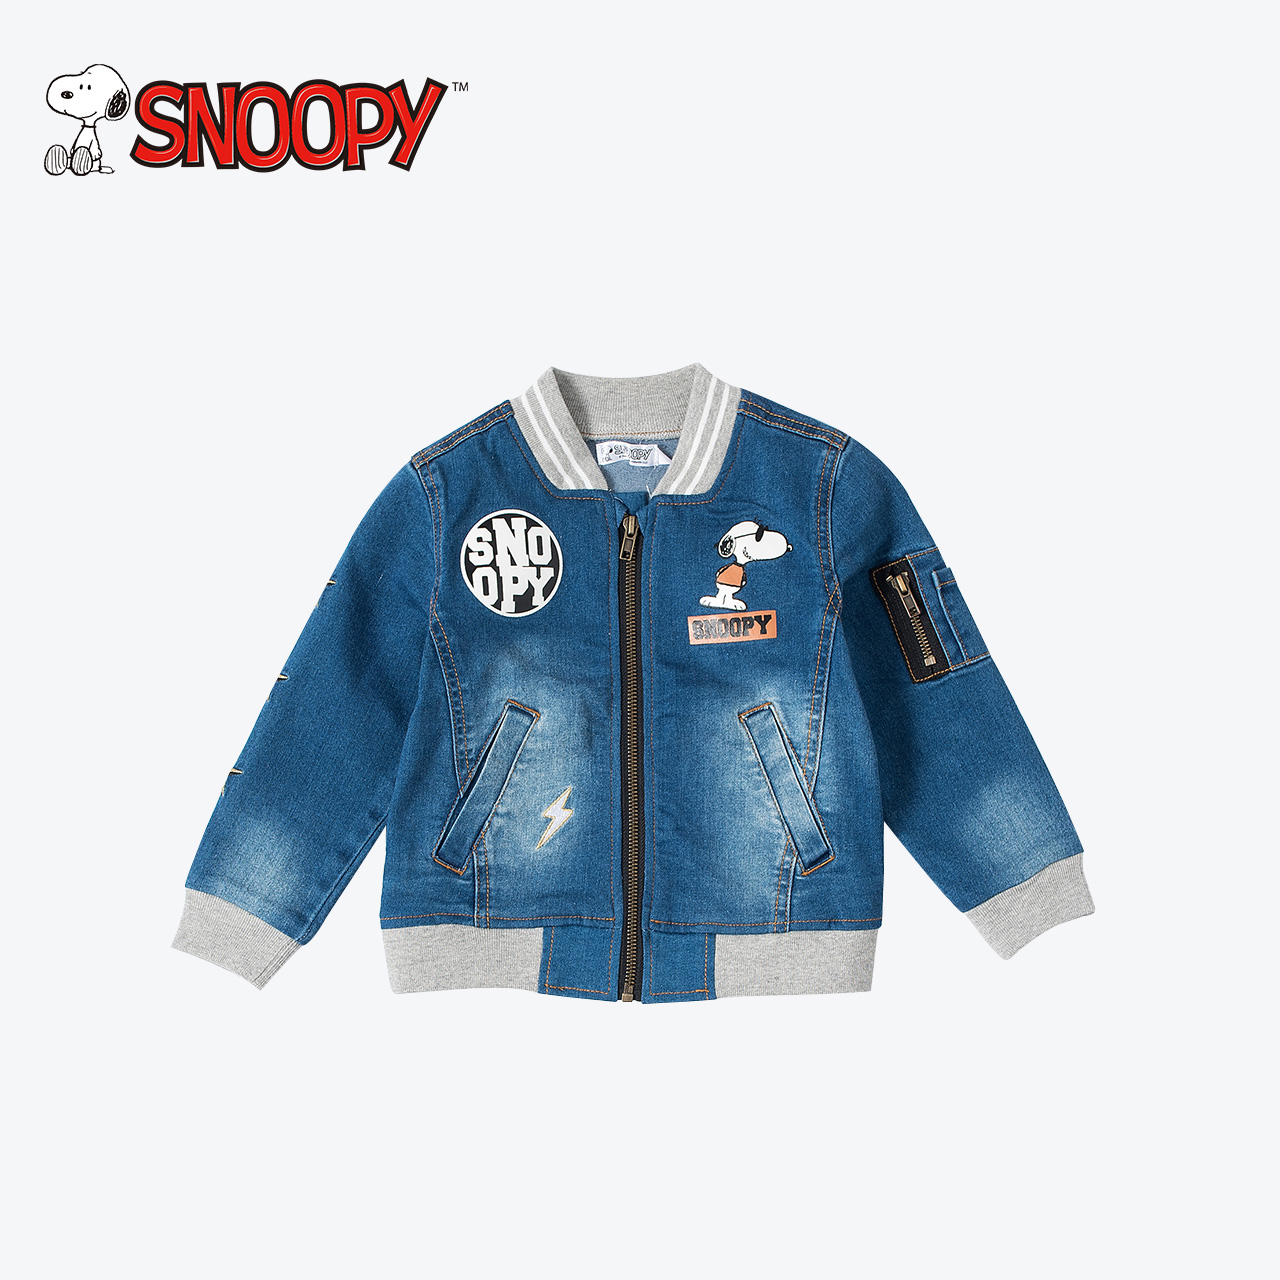 Snoopy Top Quality Spring Baby Boy Jeans Coats Clothes Children Clothing Kids Outwear Cartoon Design Kids Denim Jackets Coats new arrival spring printing pattern cotton 2017 child cartoon design fox baby hooded boy girl jacket outwear coats kids clothing